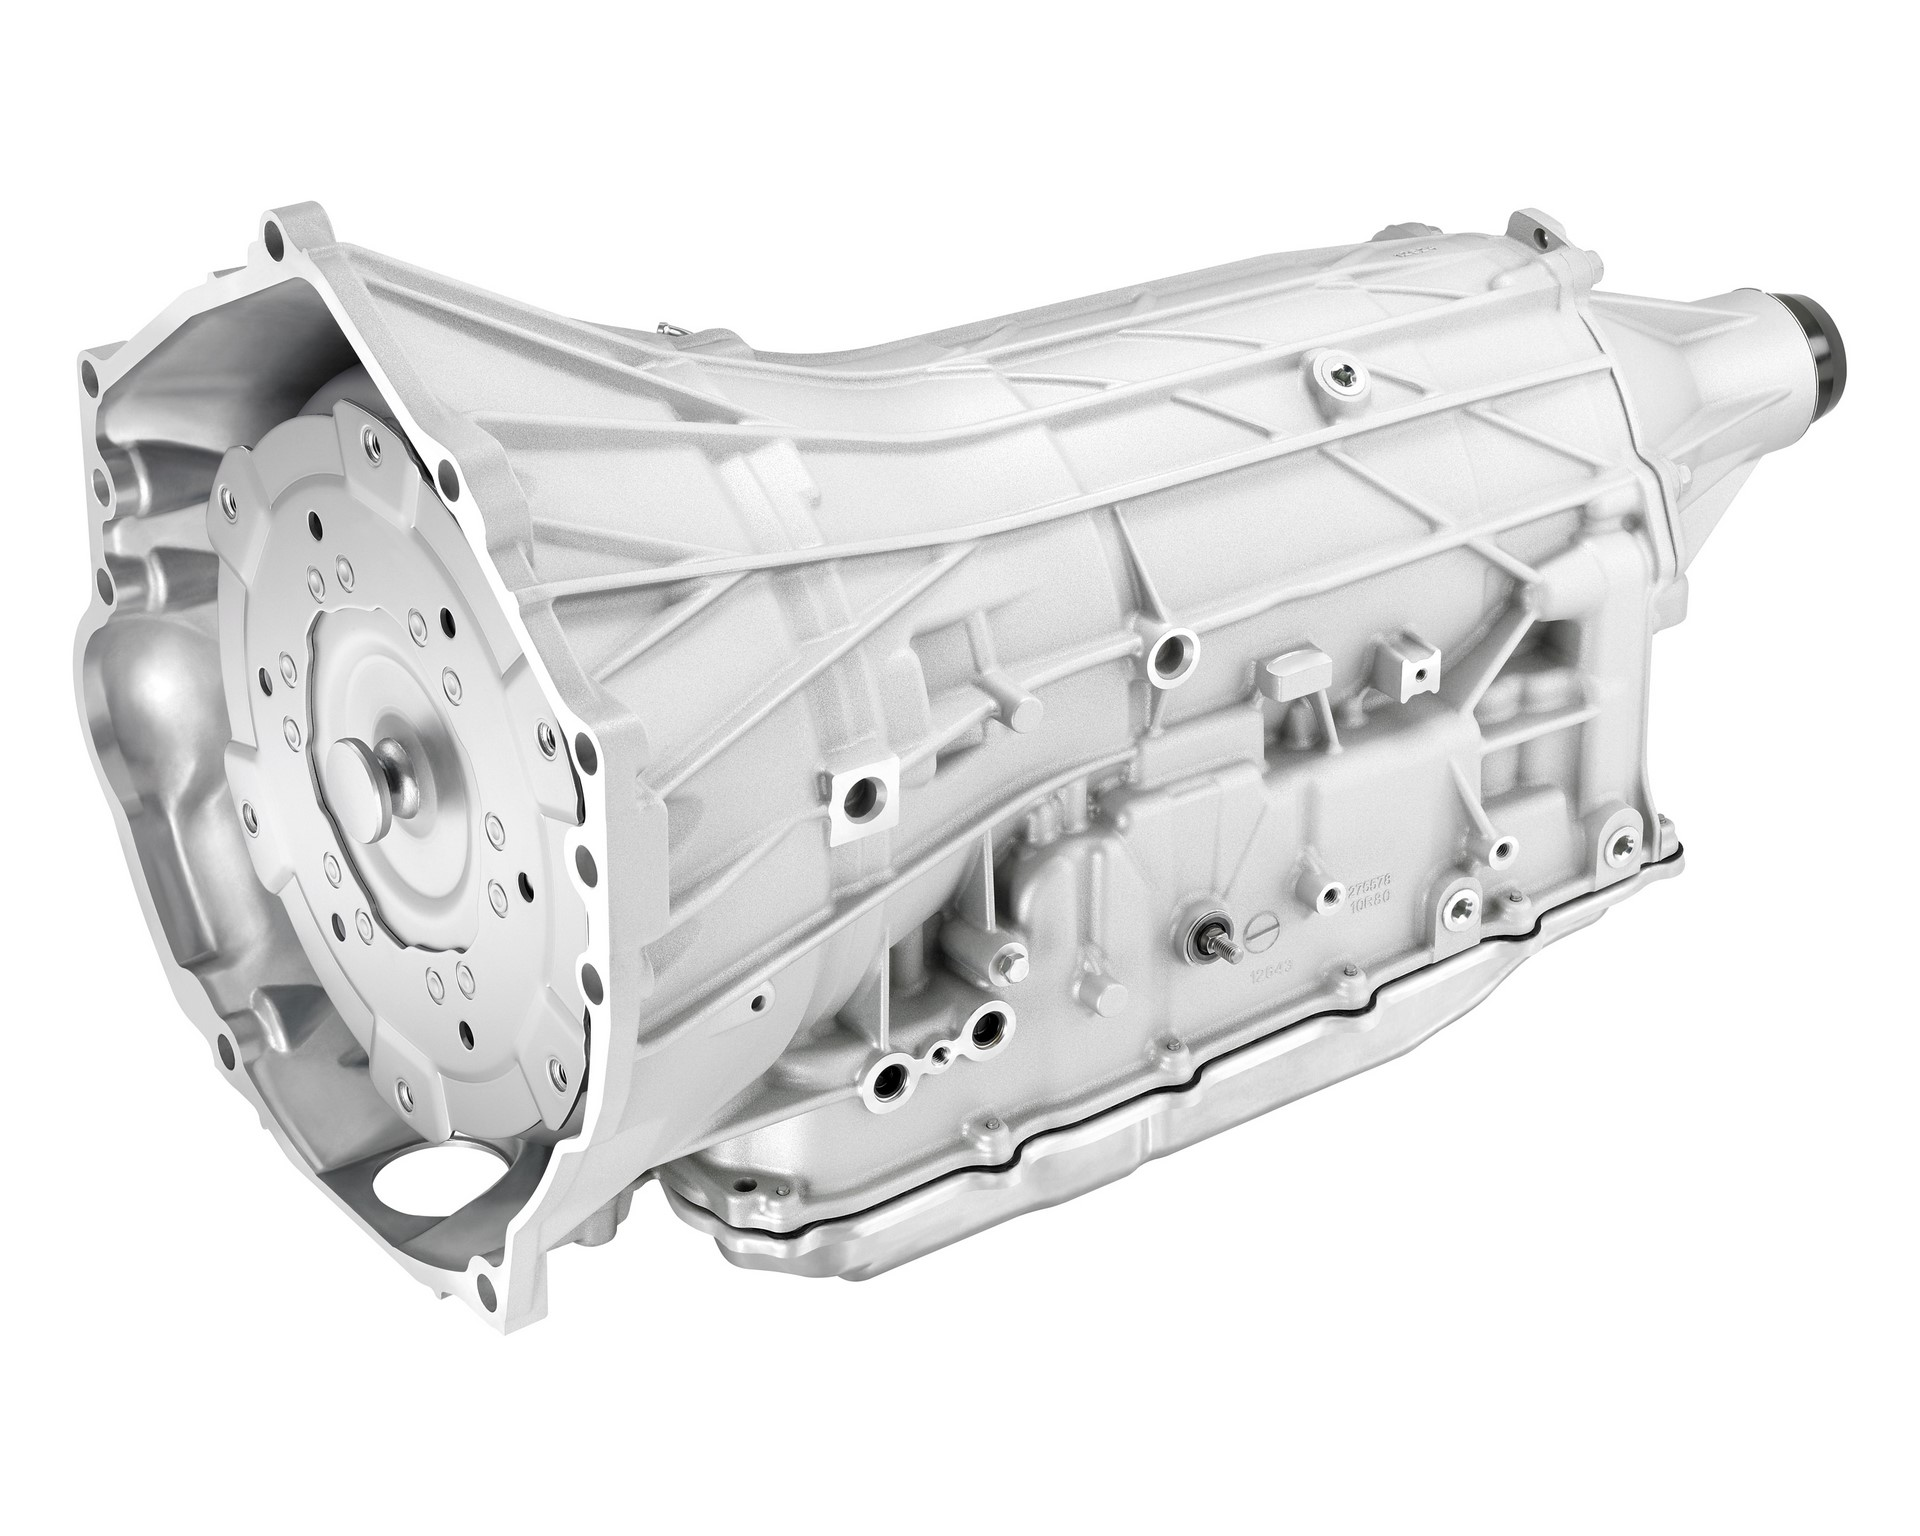 The all-new 10 speed automatic transmission is the first 10 speed automatic for a volume production car.  The performance 10 speed transmission transfers power and torque with quick shifts and maintains more engine power after each shift.